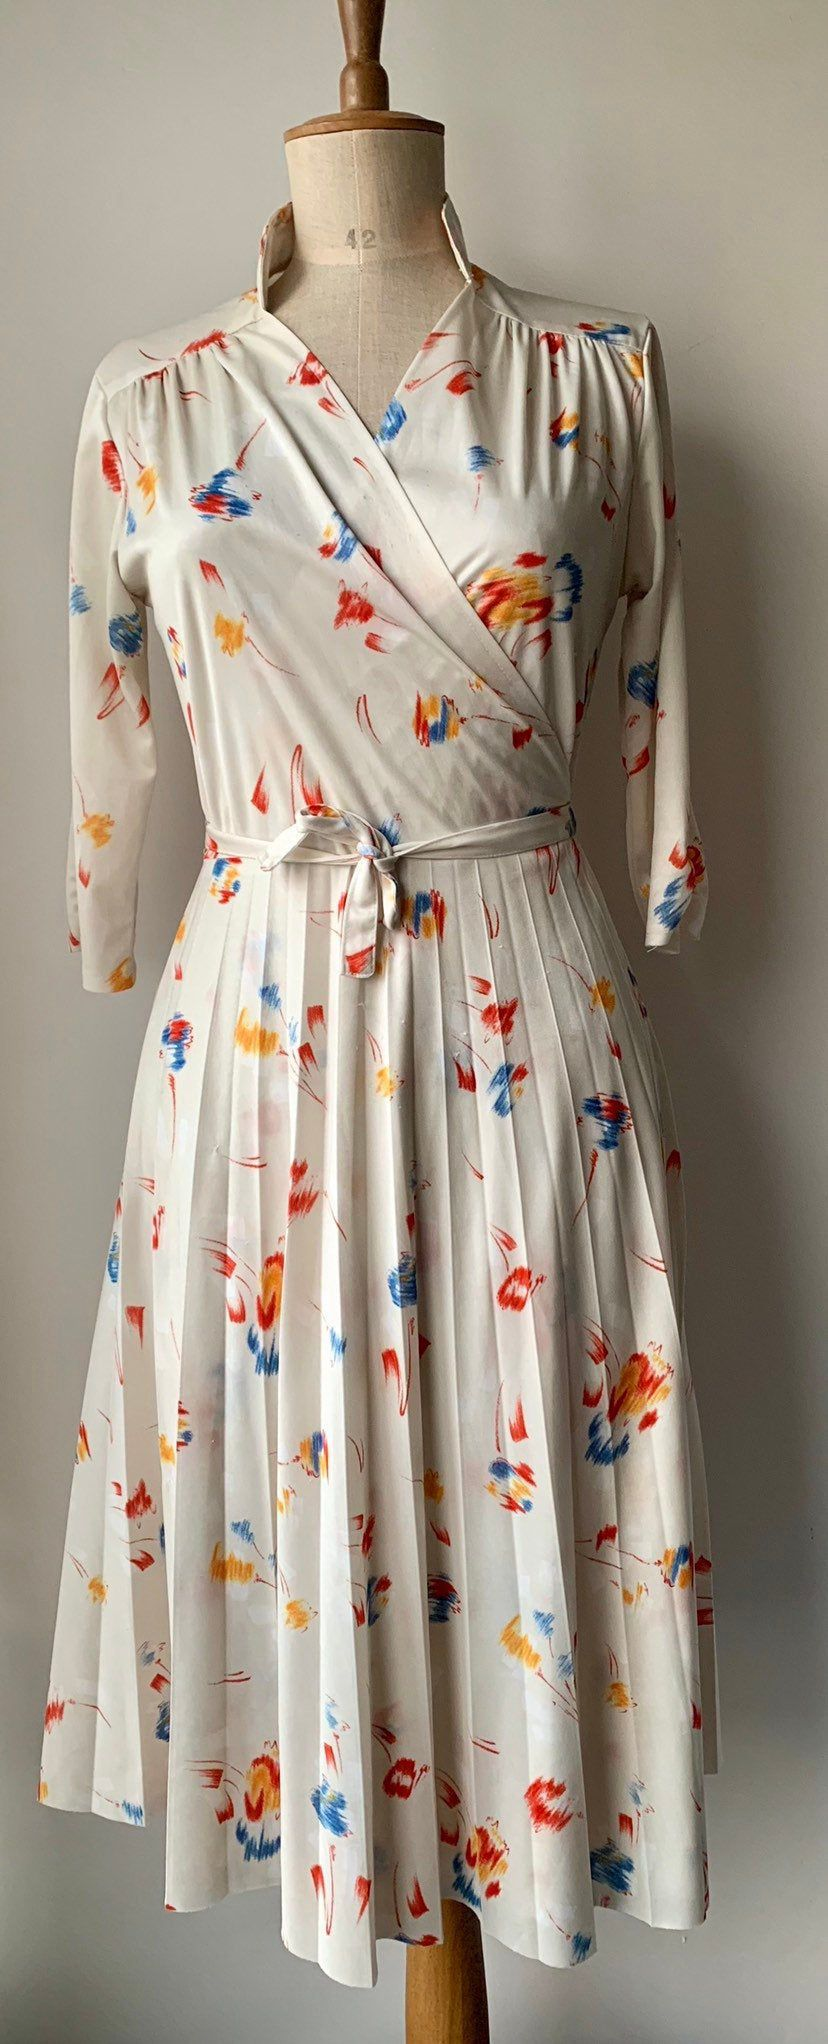 Pin By Raine Patterson On Dressforsummer Vintage Wrap Dress Thrifted Outfits Causal Dresses [ 2044 x 828 Pixel ]